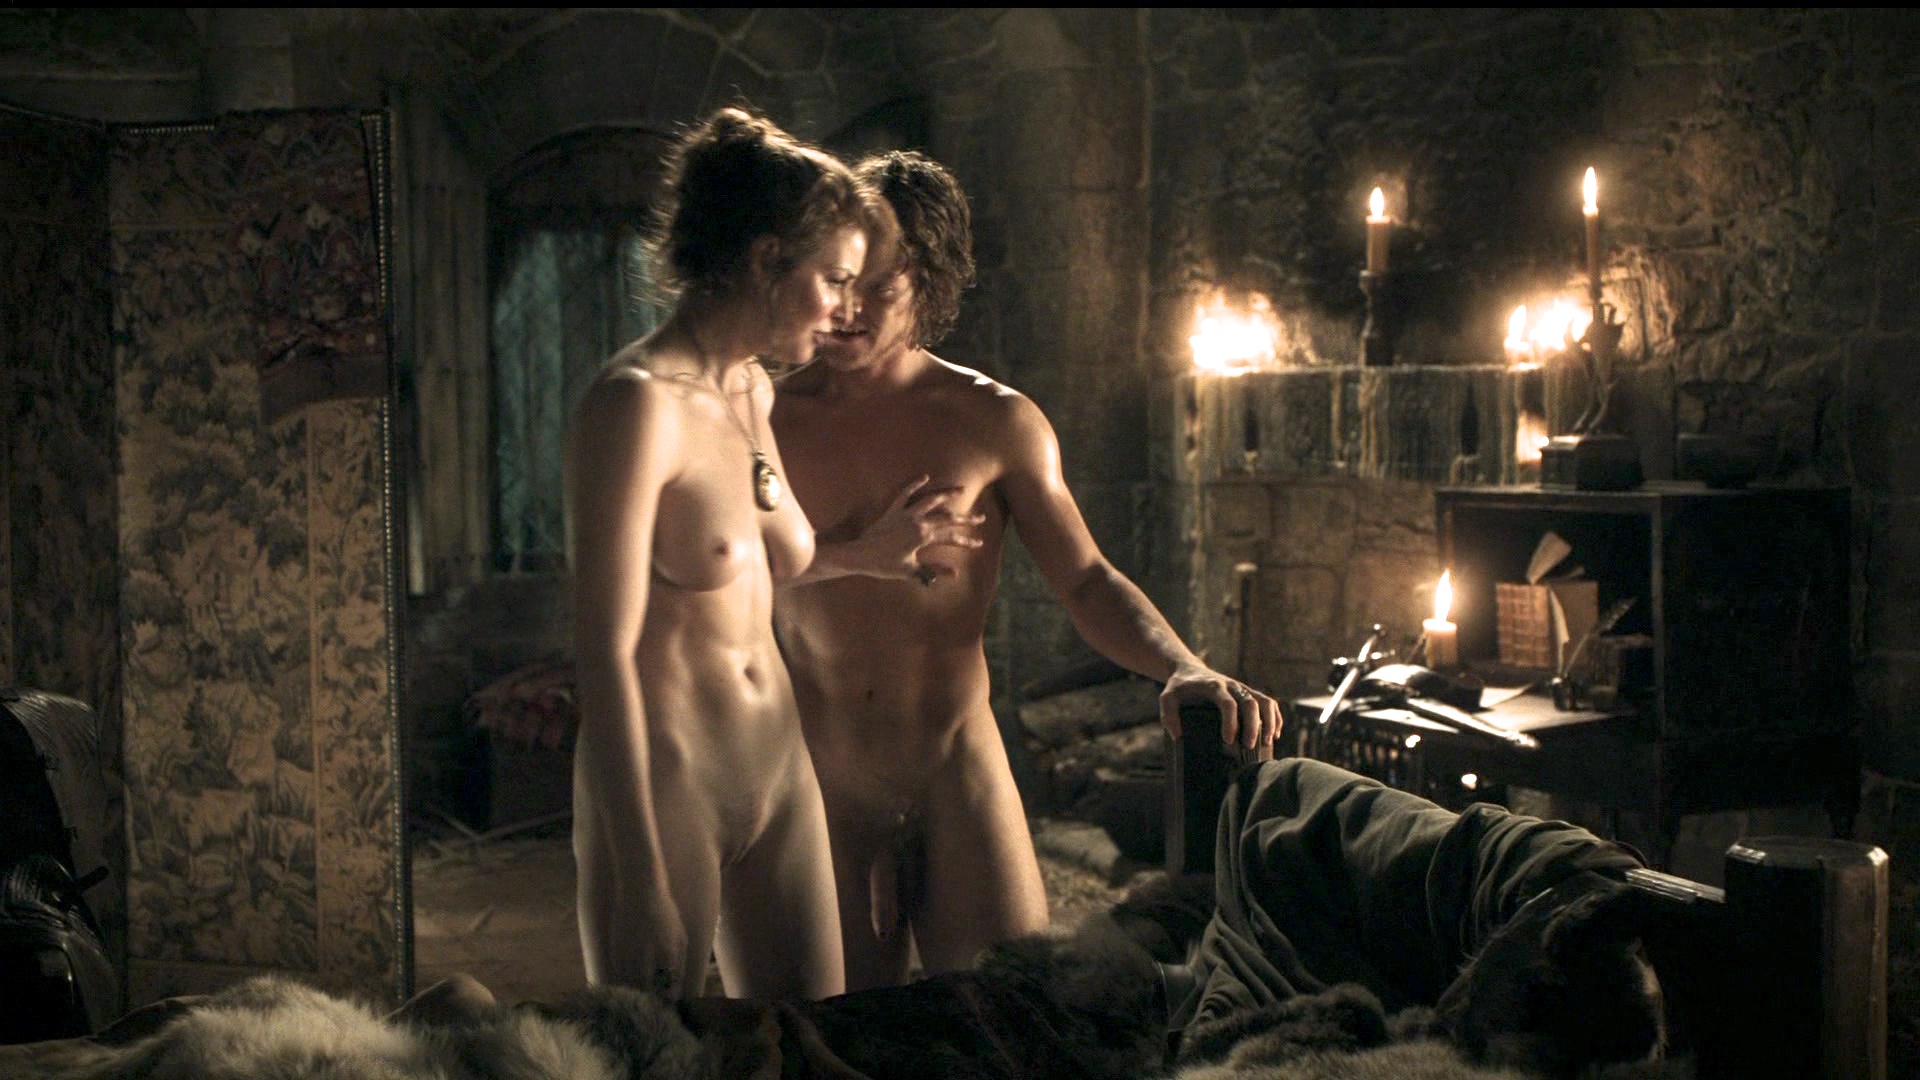 women of hbo nude